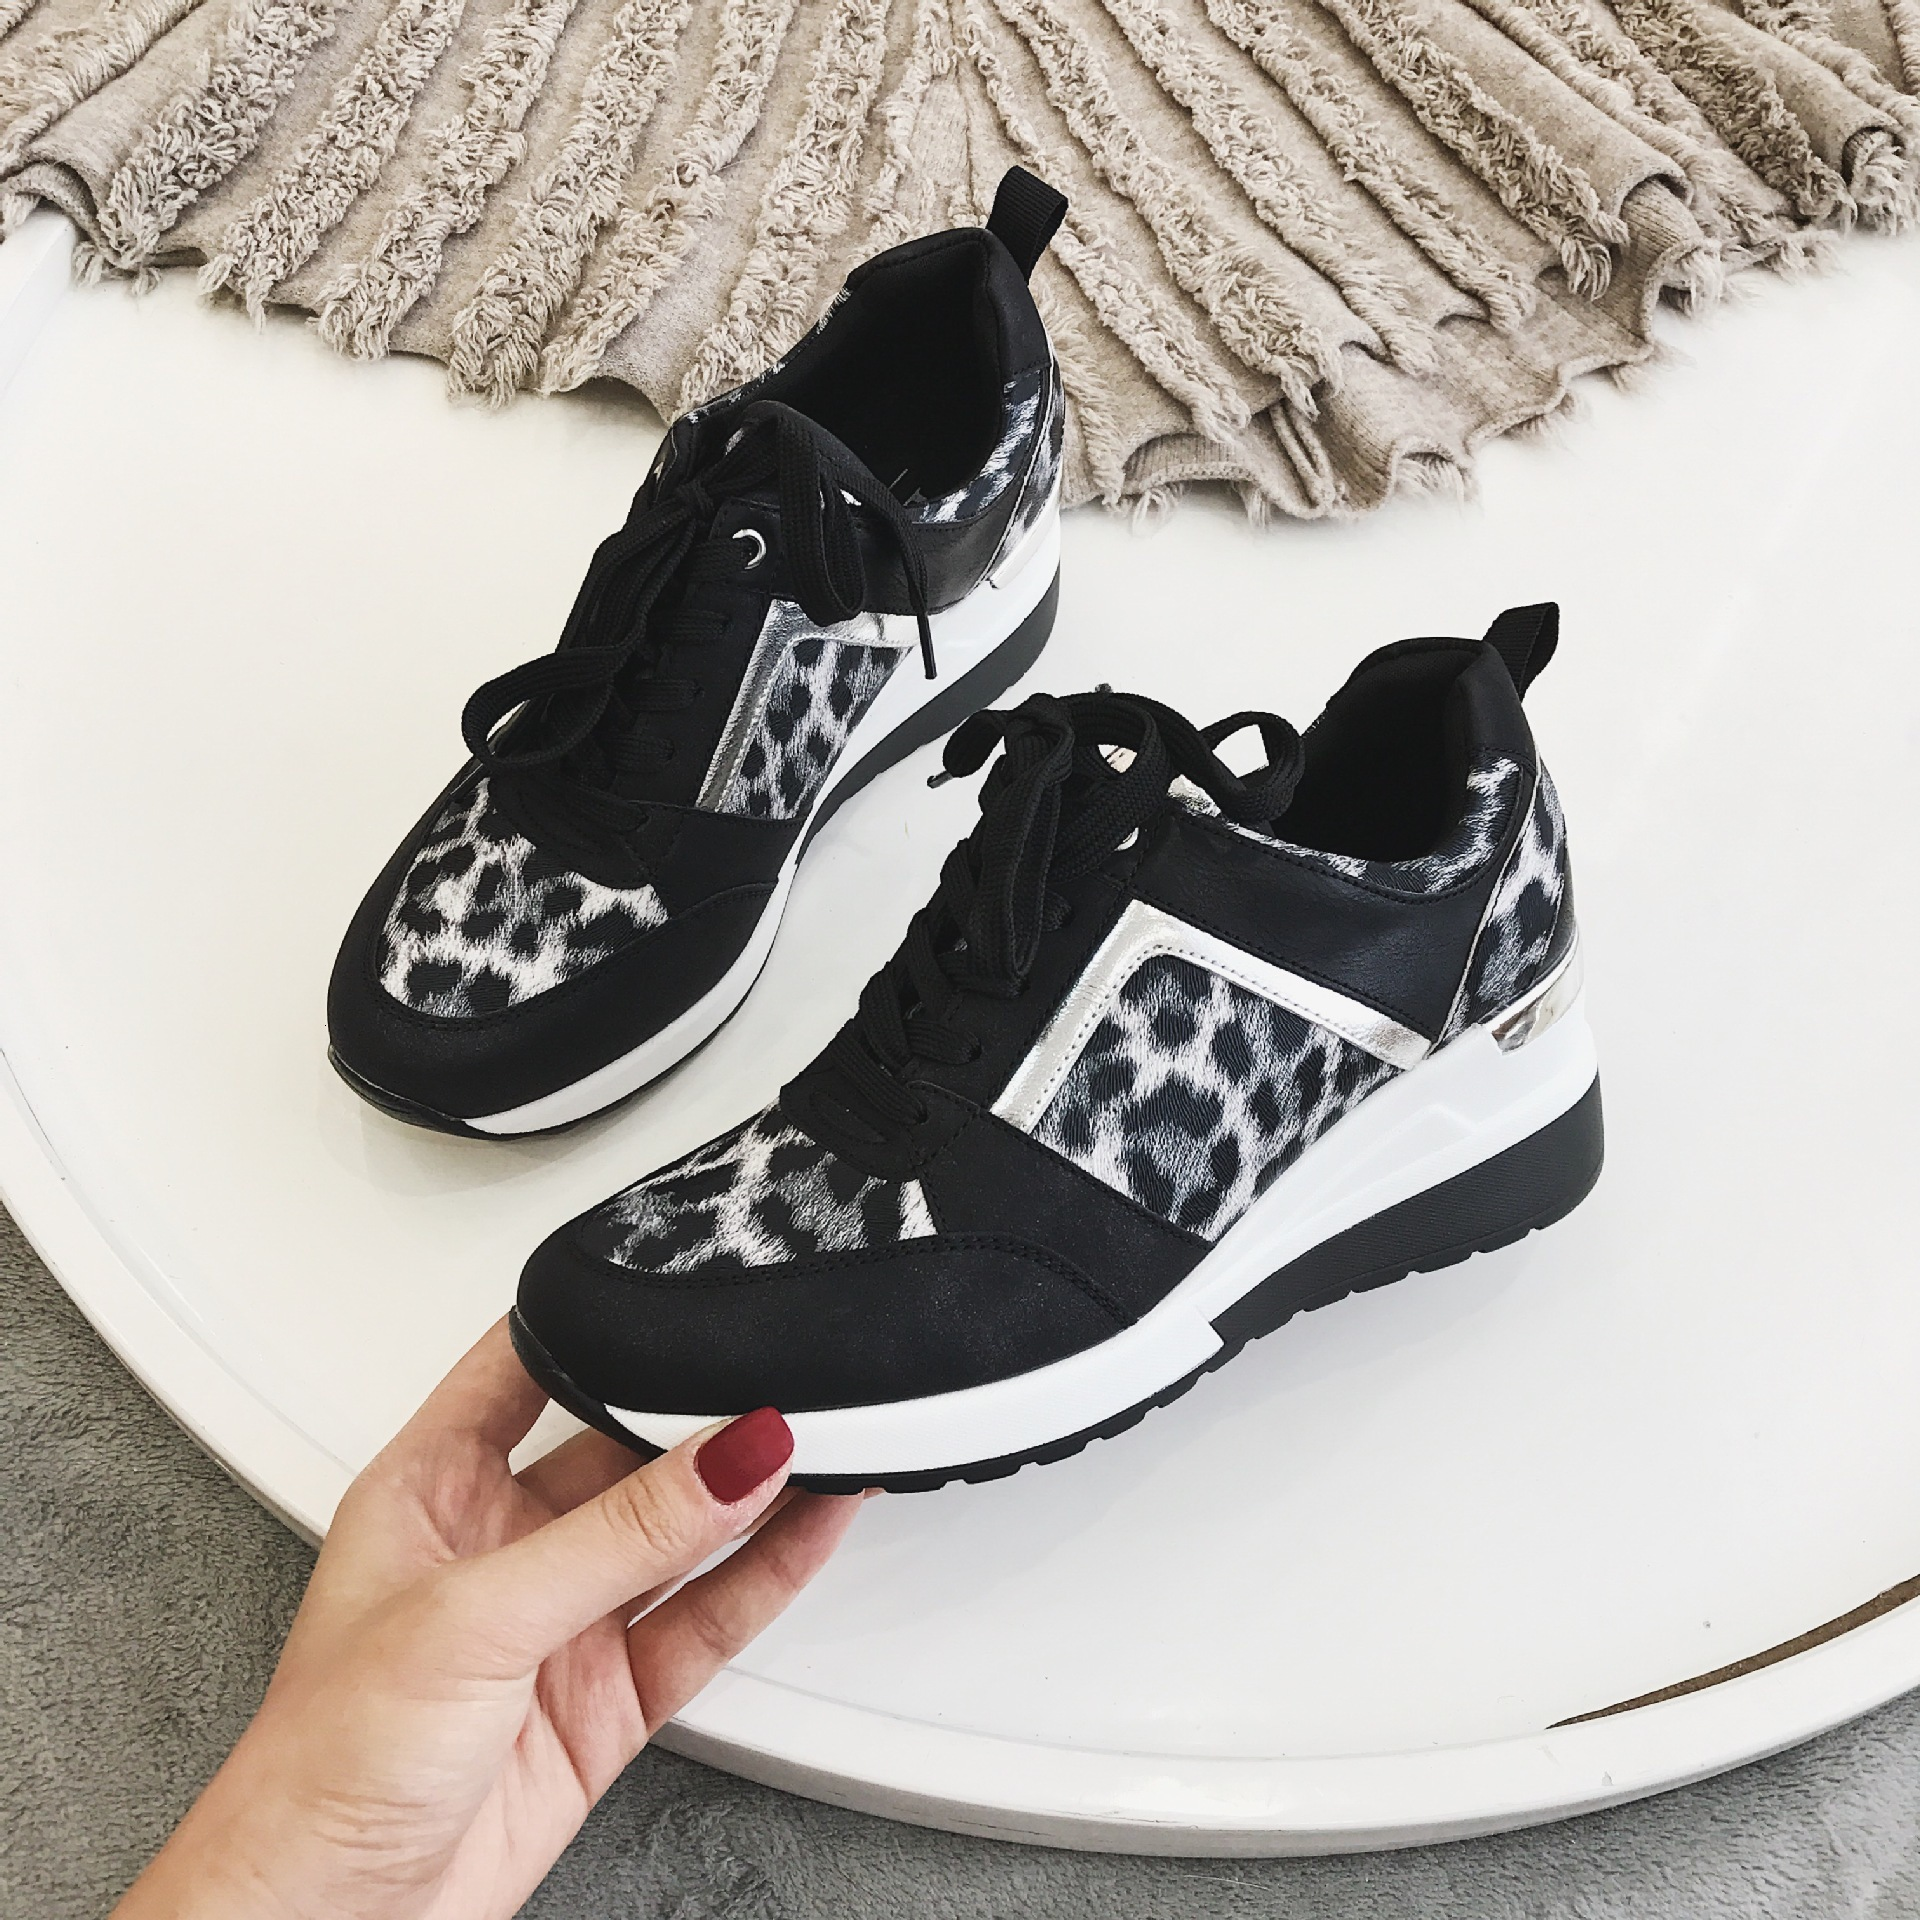 New Leopard Sneakers Woman New Platform Shoes Women Stylish Thick Sole Sports Fashion Styles Light Weight Size 36-41